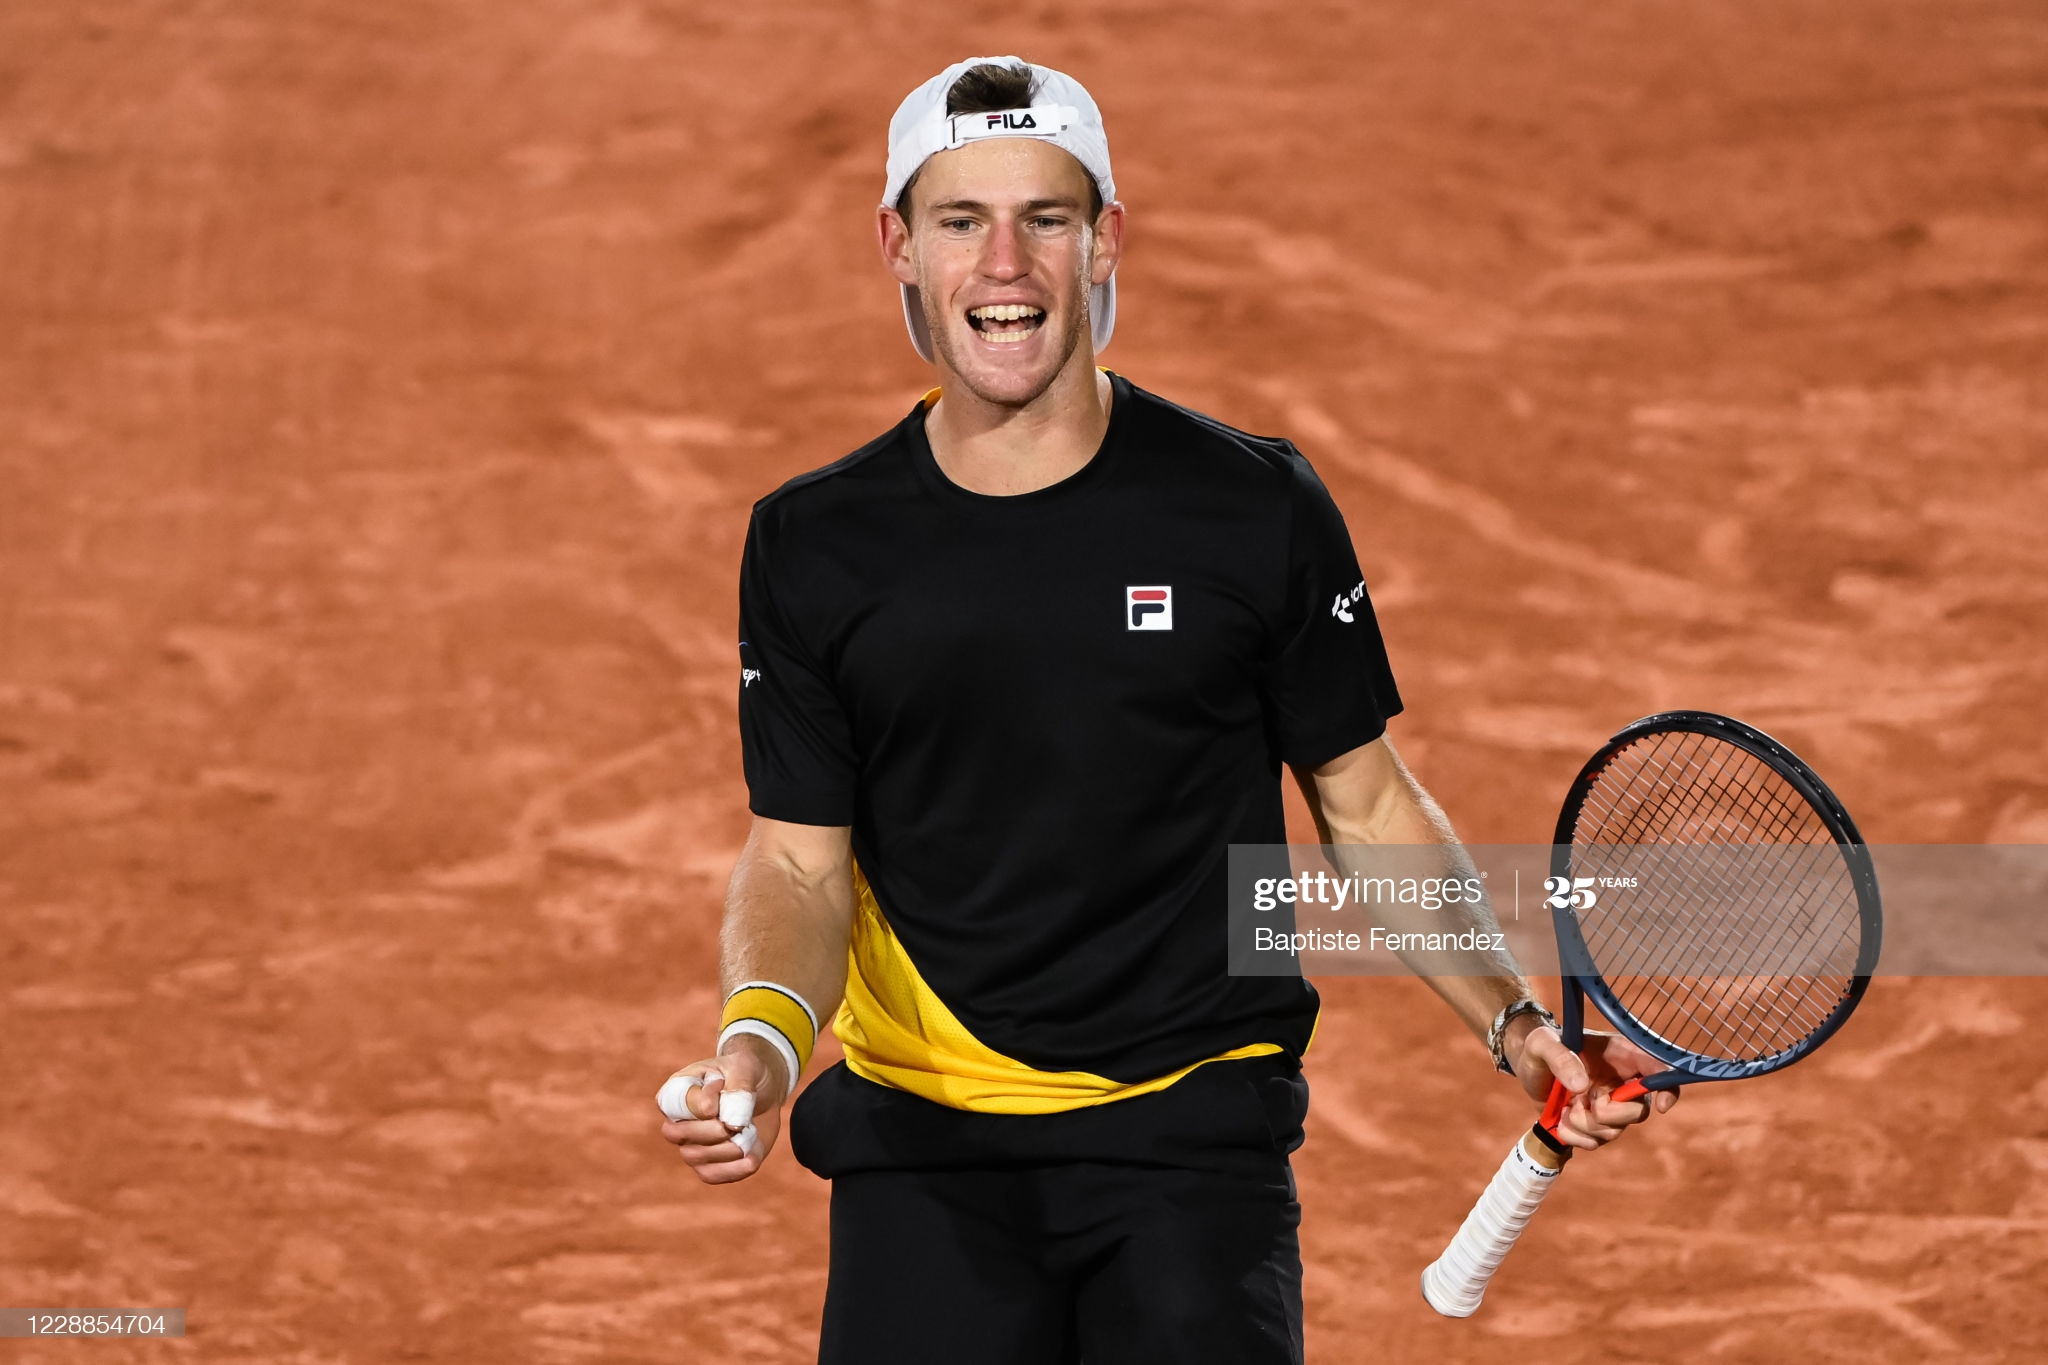 schwartzman day 6 french open 2020.2